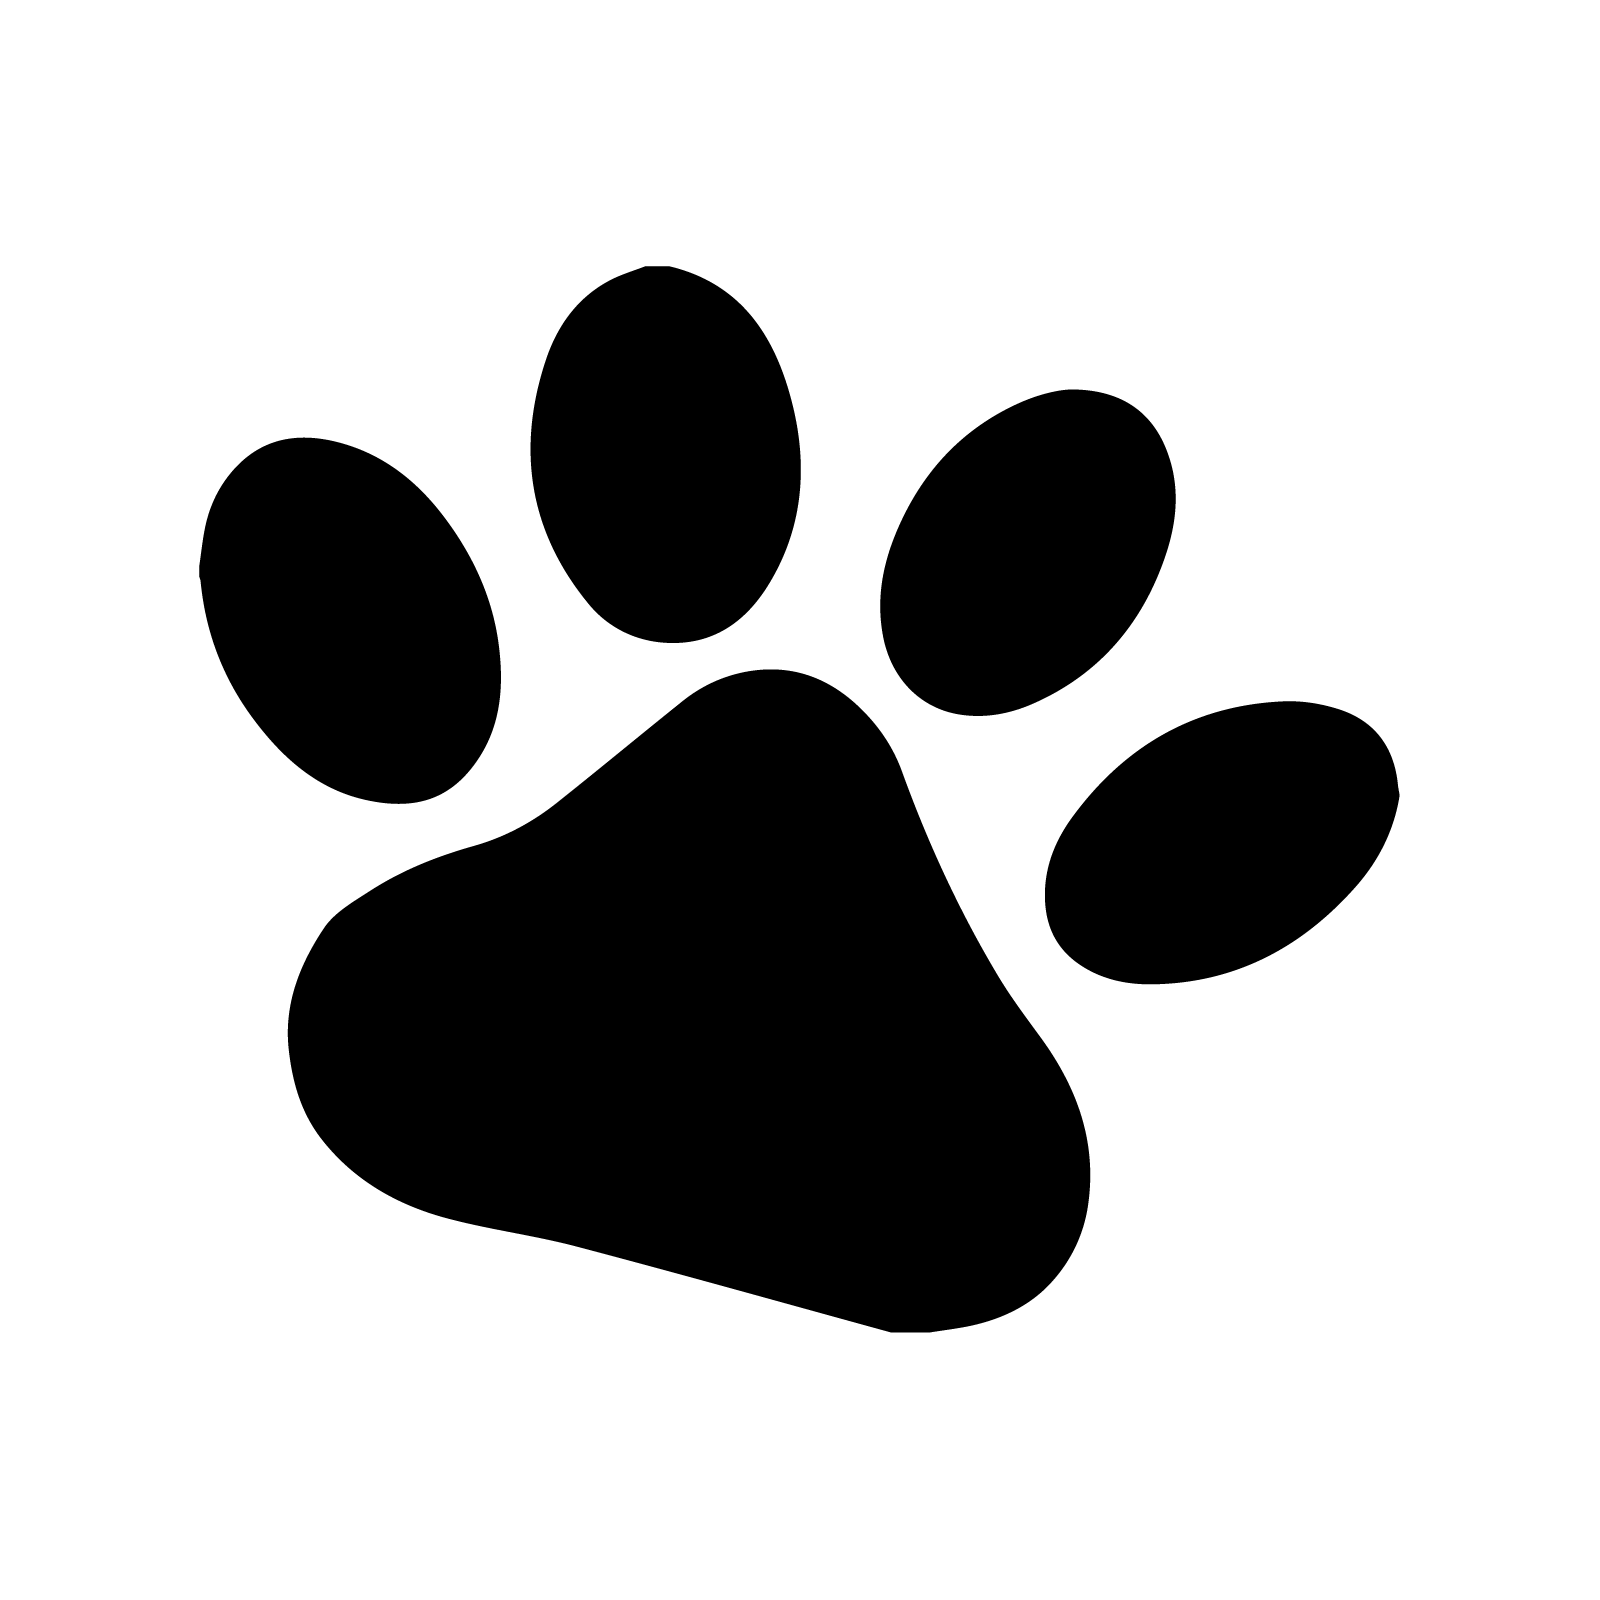 Paw clip art stencil. Dog paws stenciling and